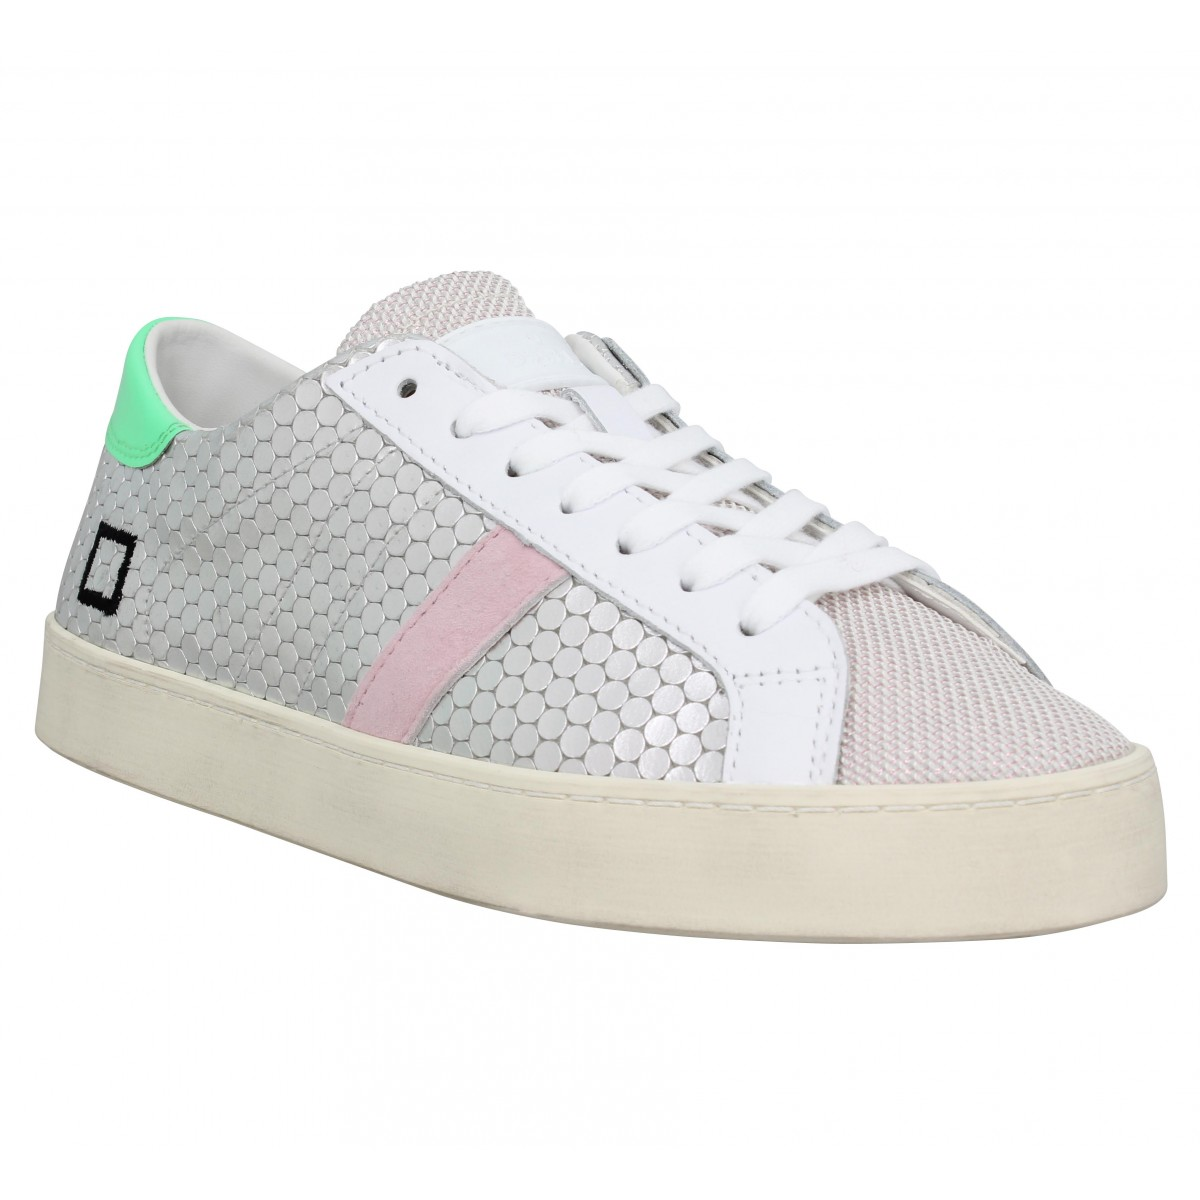 Baskets DATE SNEAKERS Hill Low pong Femme Argent Vert